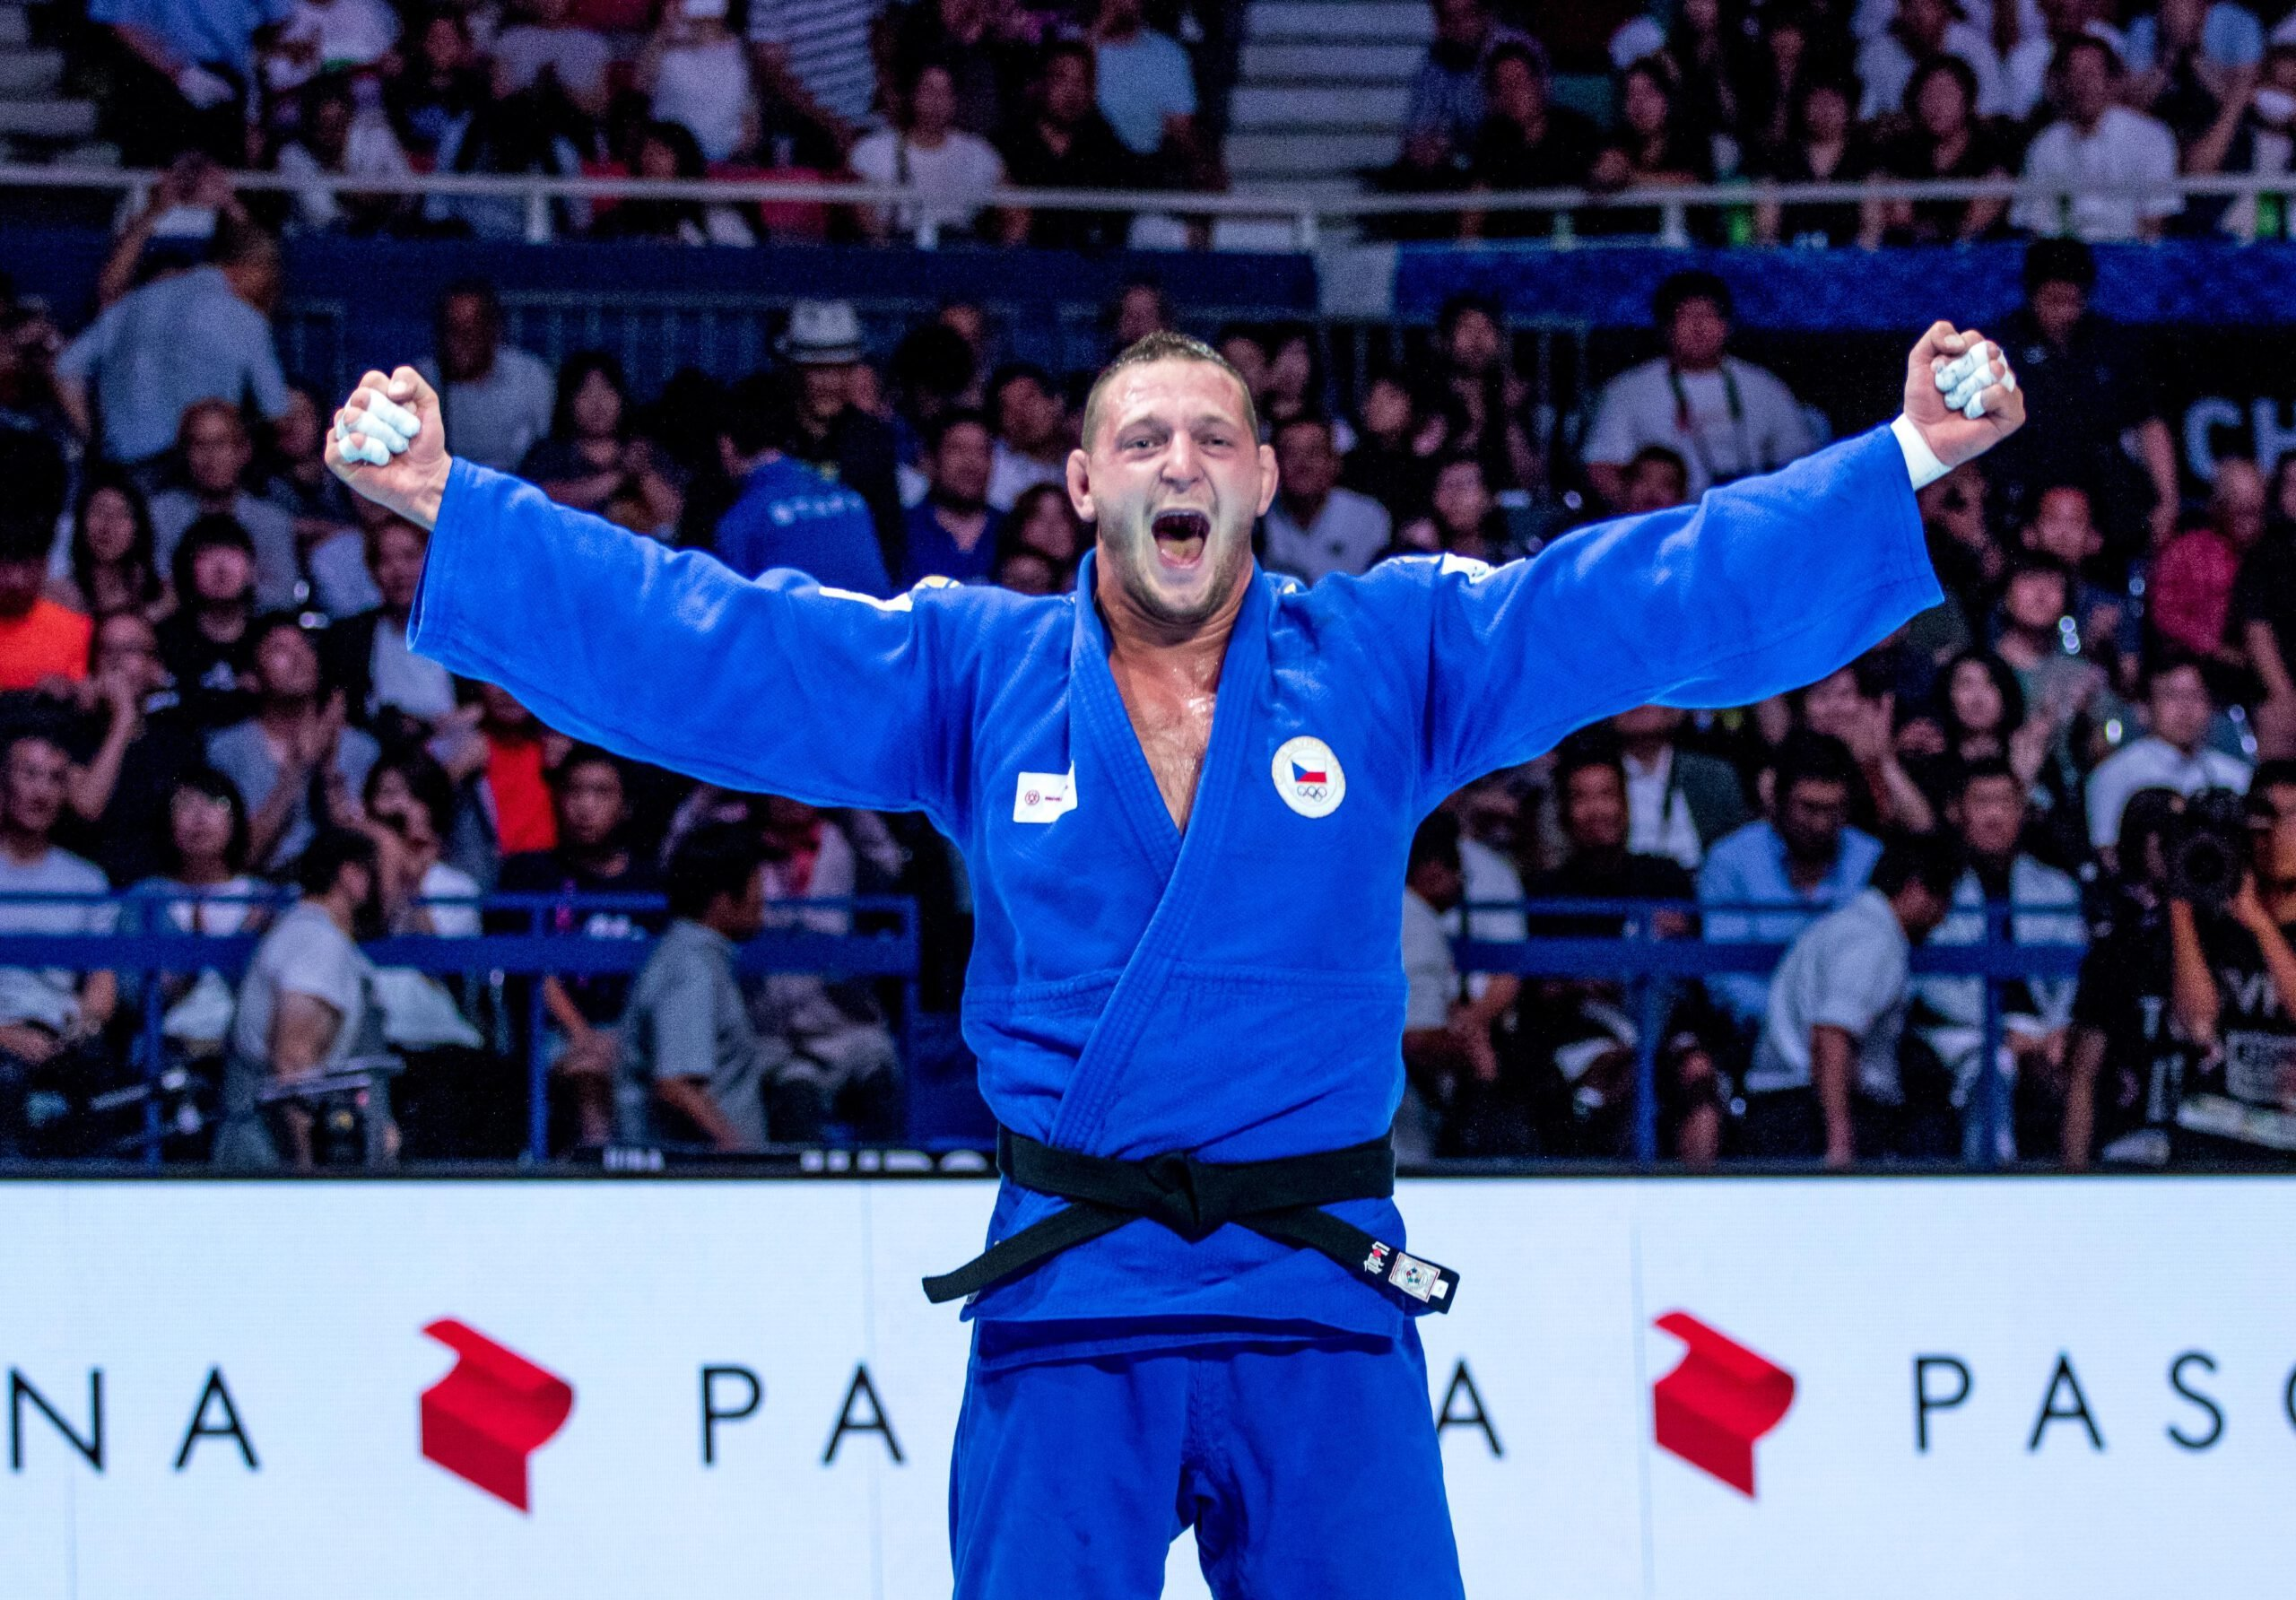 KRPALEK HOPES TO TAKE EUROPEAN TITLE AT HOME ON DAY THREE